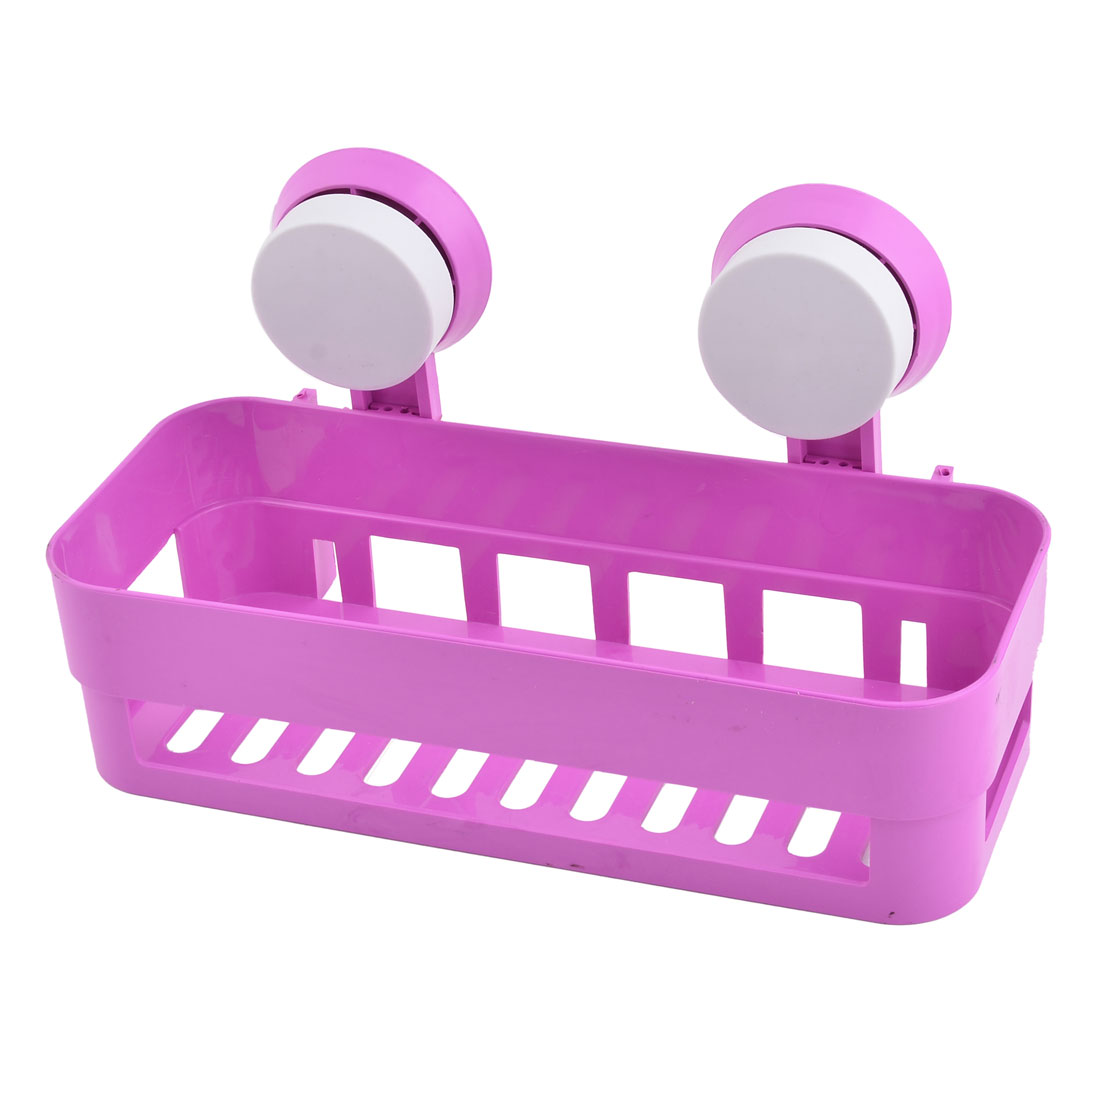 Home Plastic Wall Hanging Soap Brush Storage Suction Cup Shelf Holder Fuchsia